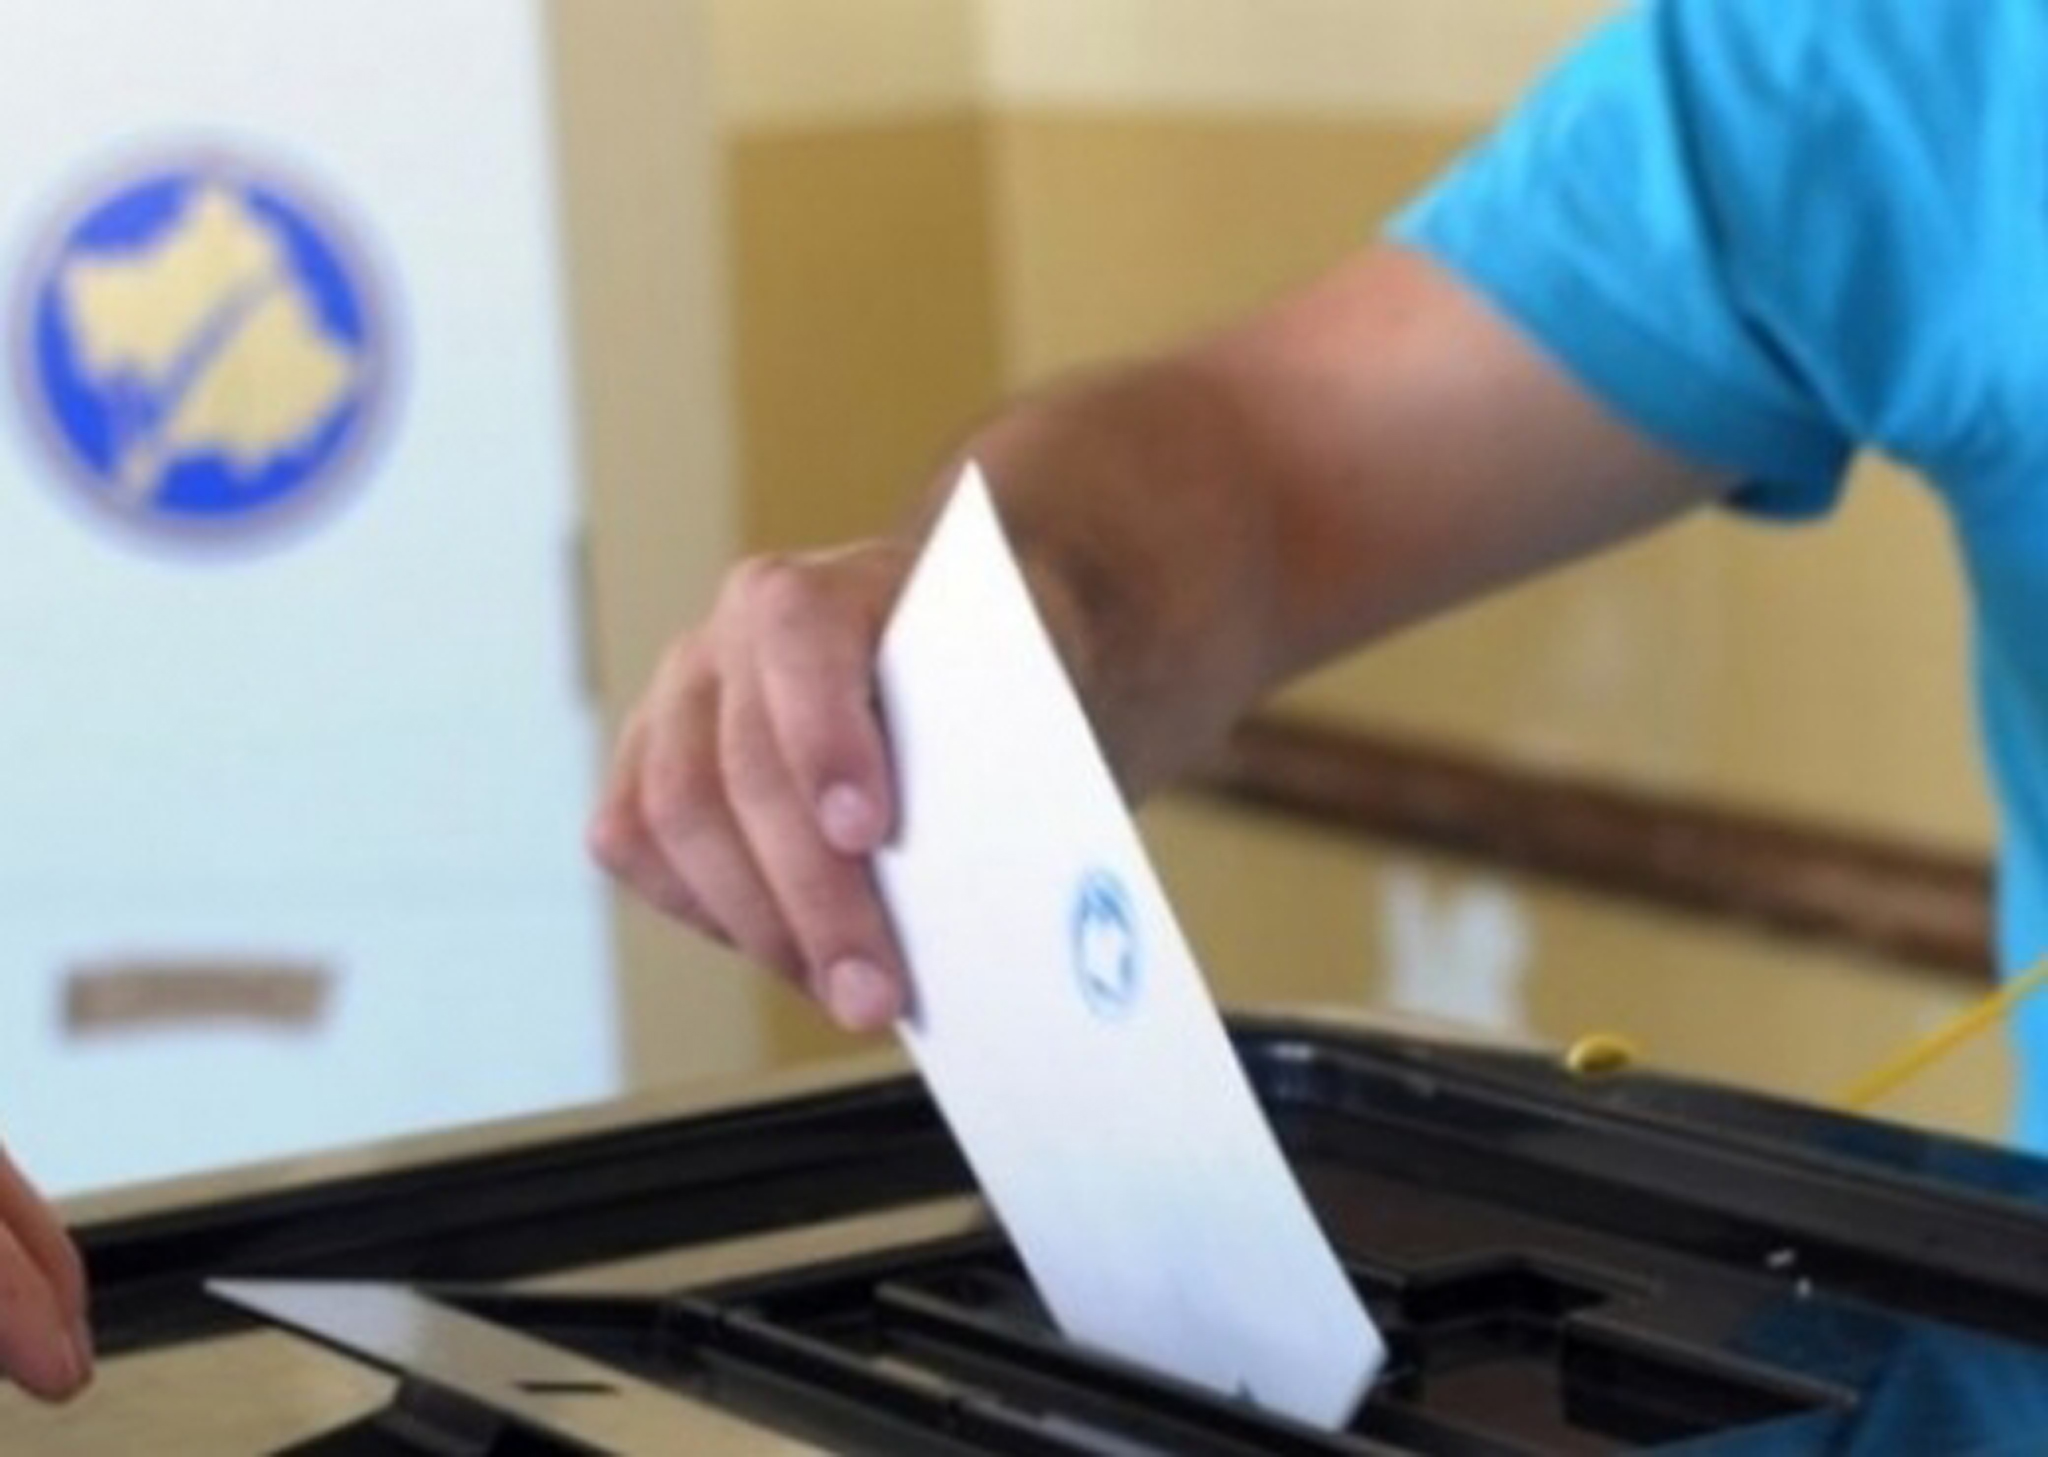 Serious Irregularities Observed in Controversial Albanian Elections